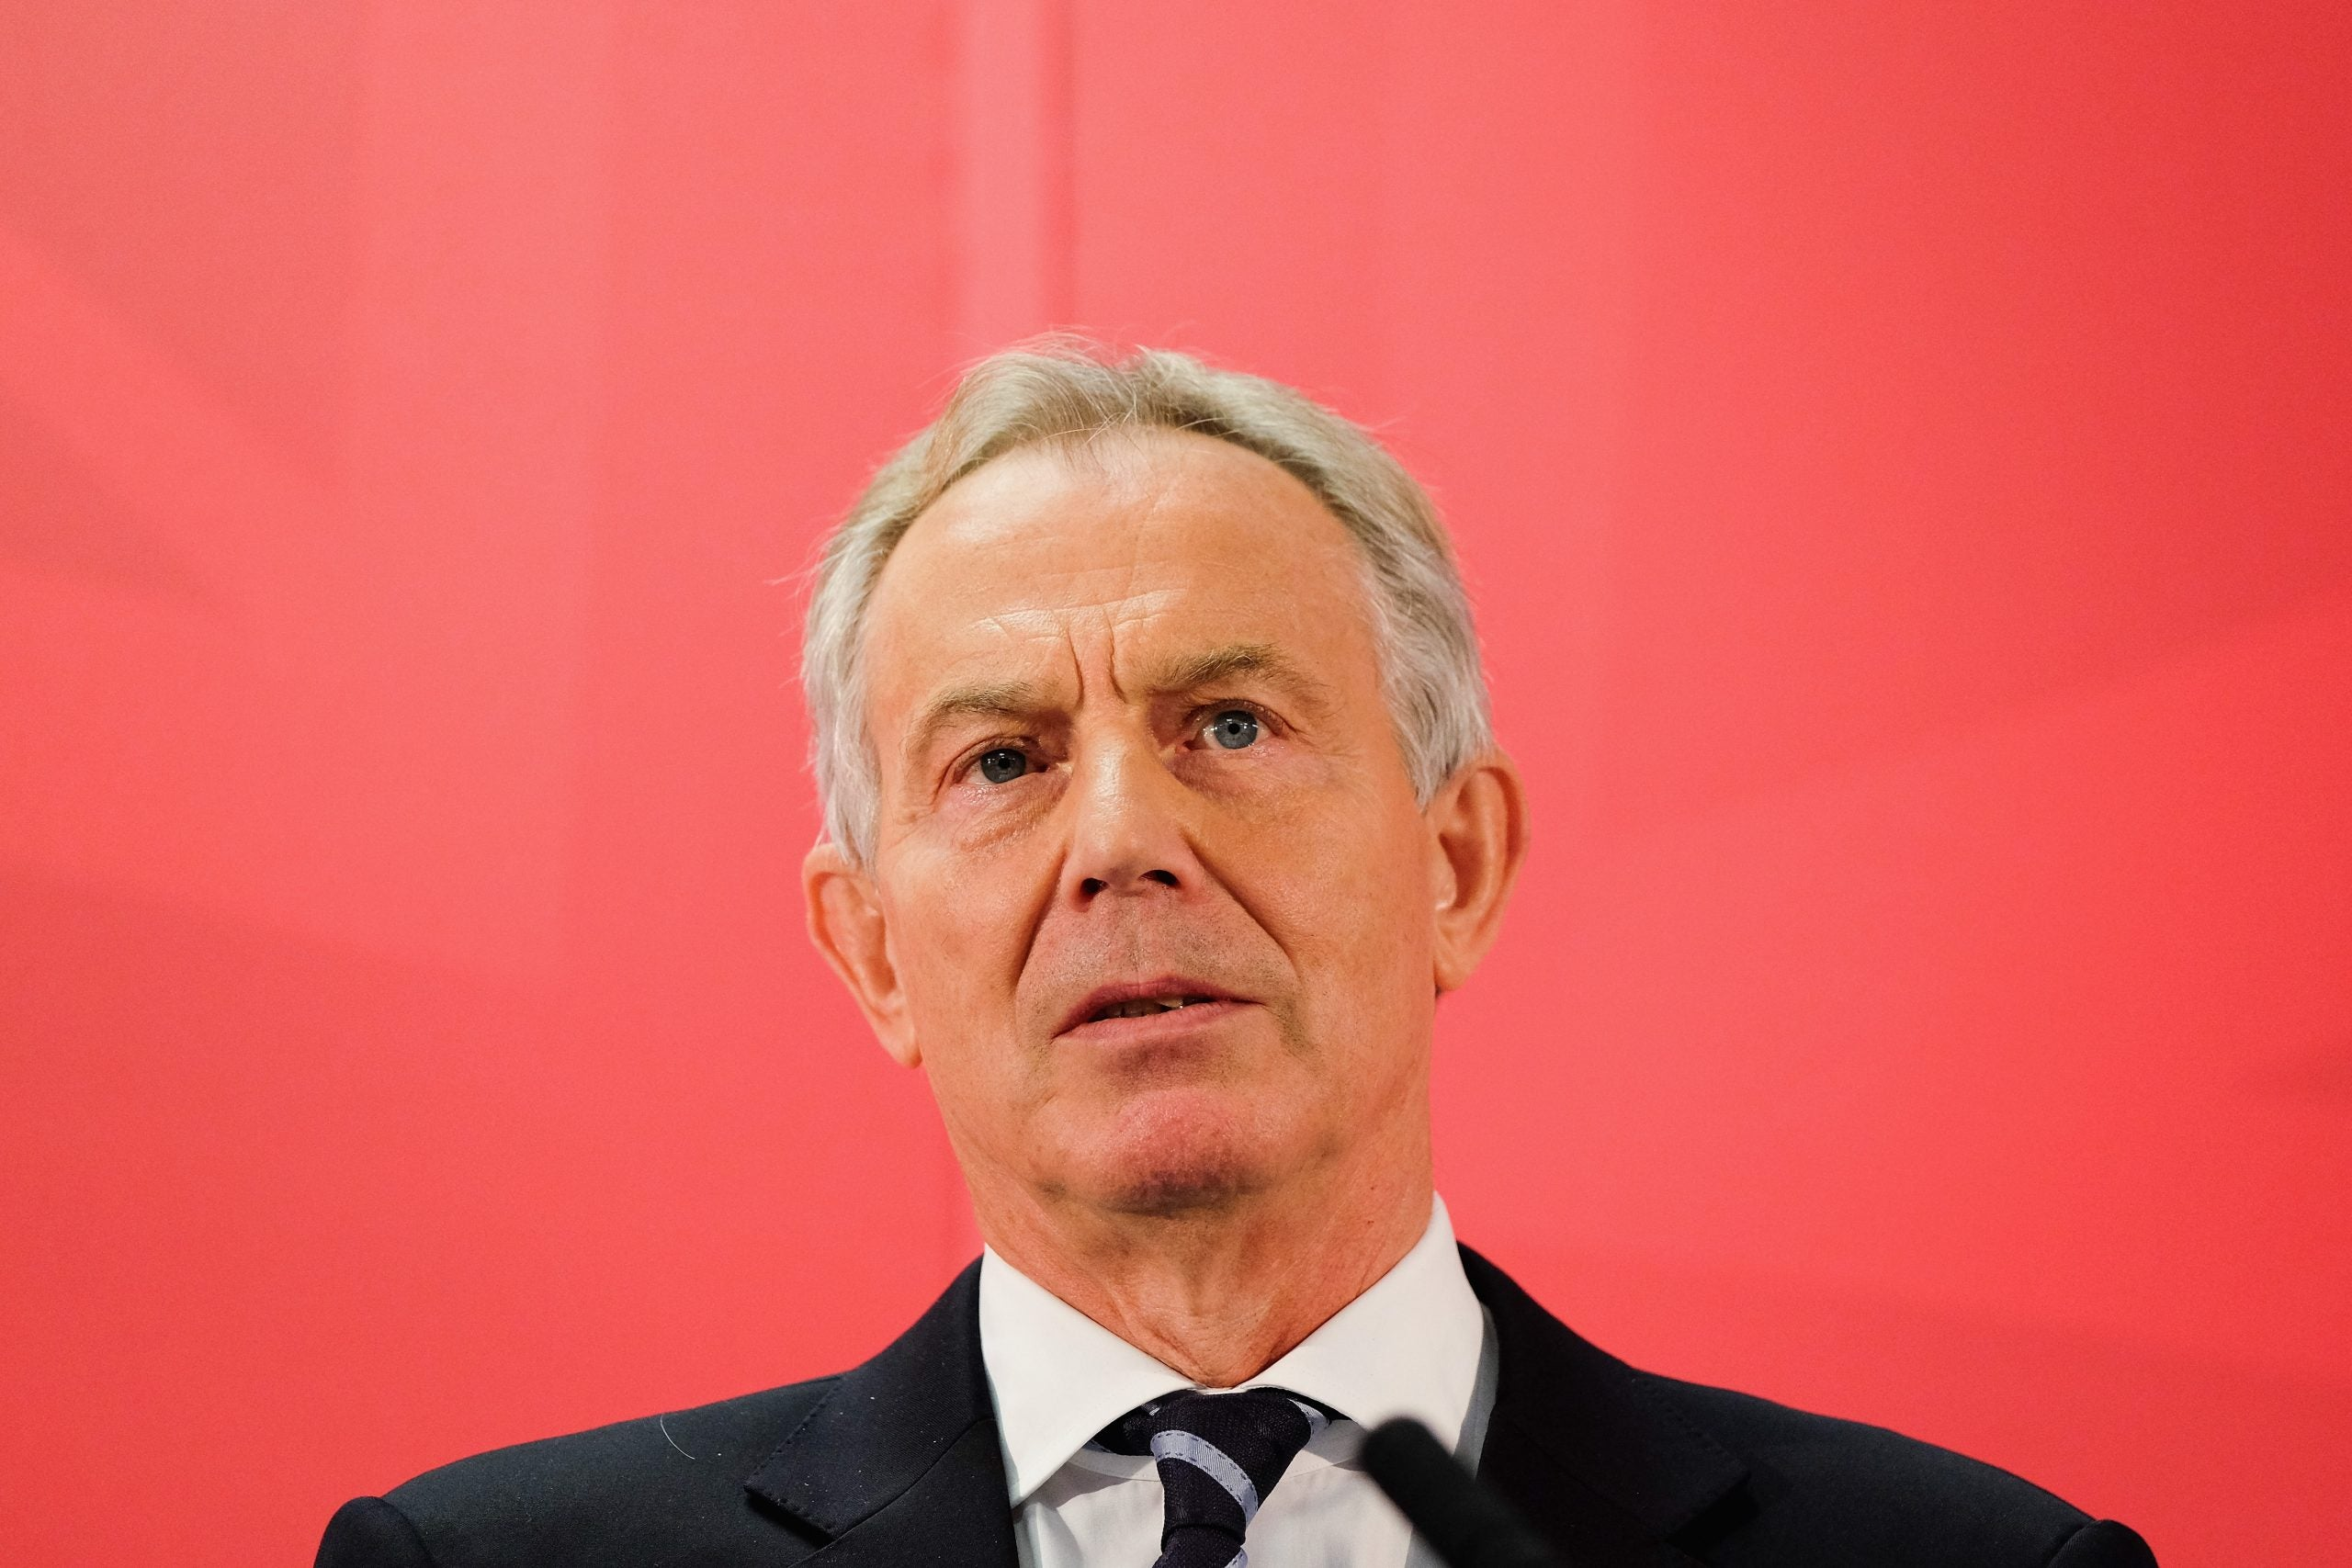 Does Tony Blair really believe he can lead the change Labour needs?